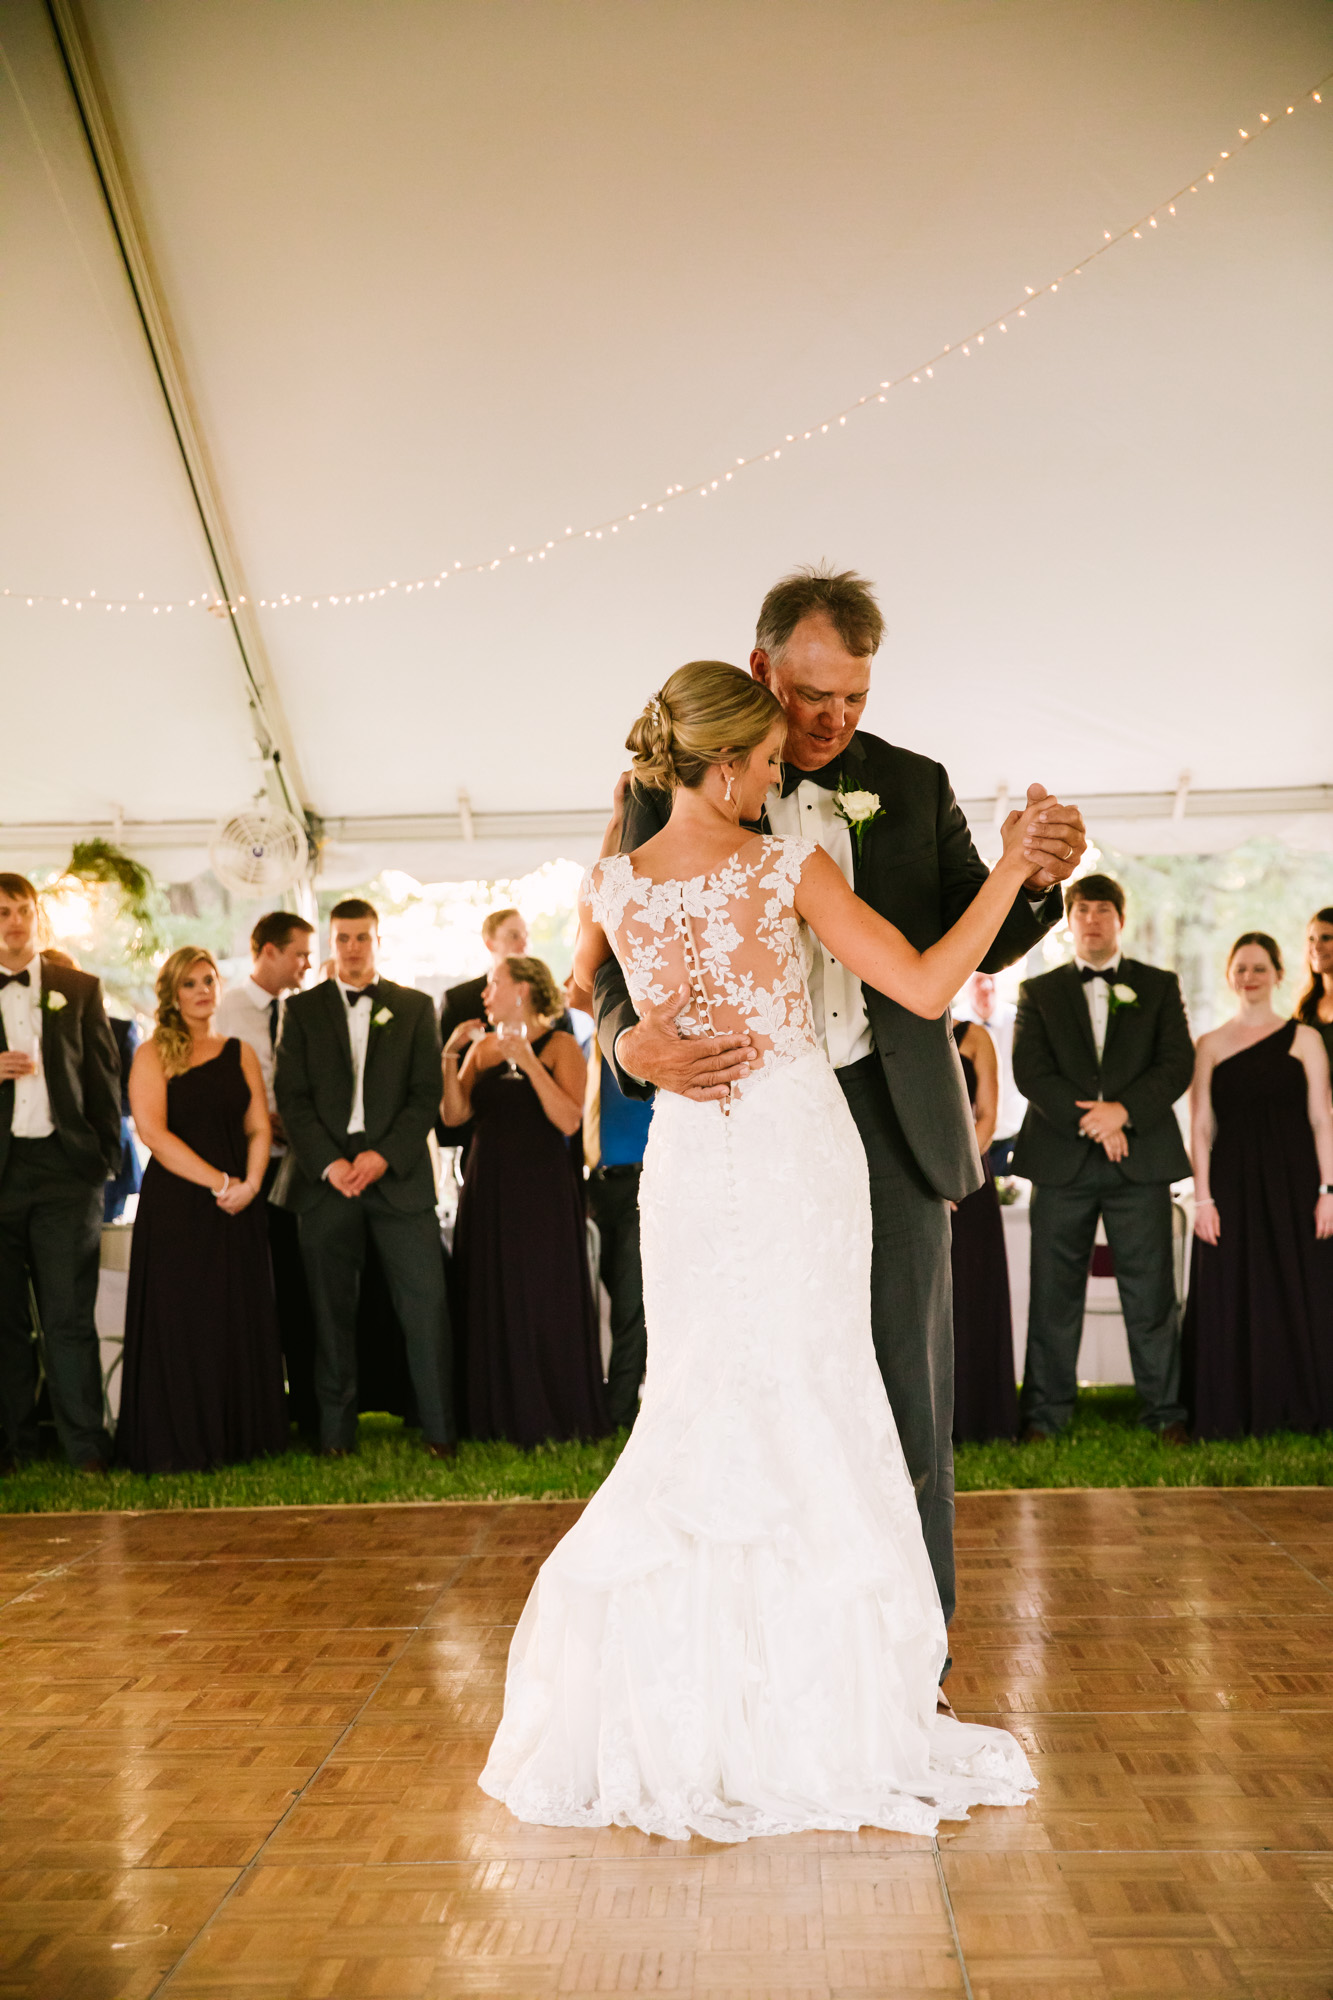 Waynesville, NC Wedding Photography | Wedding Reception Father Daughter Dance